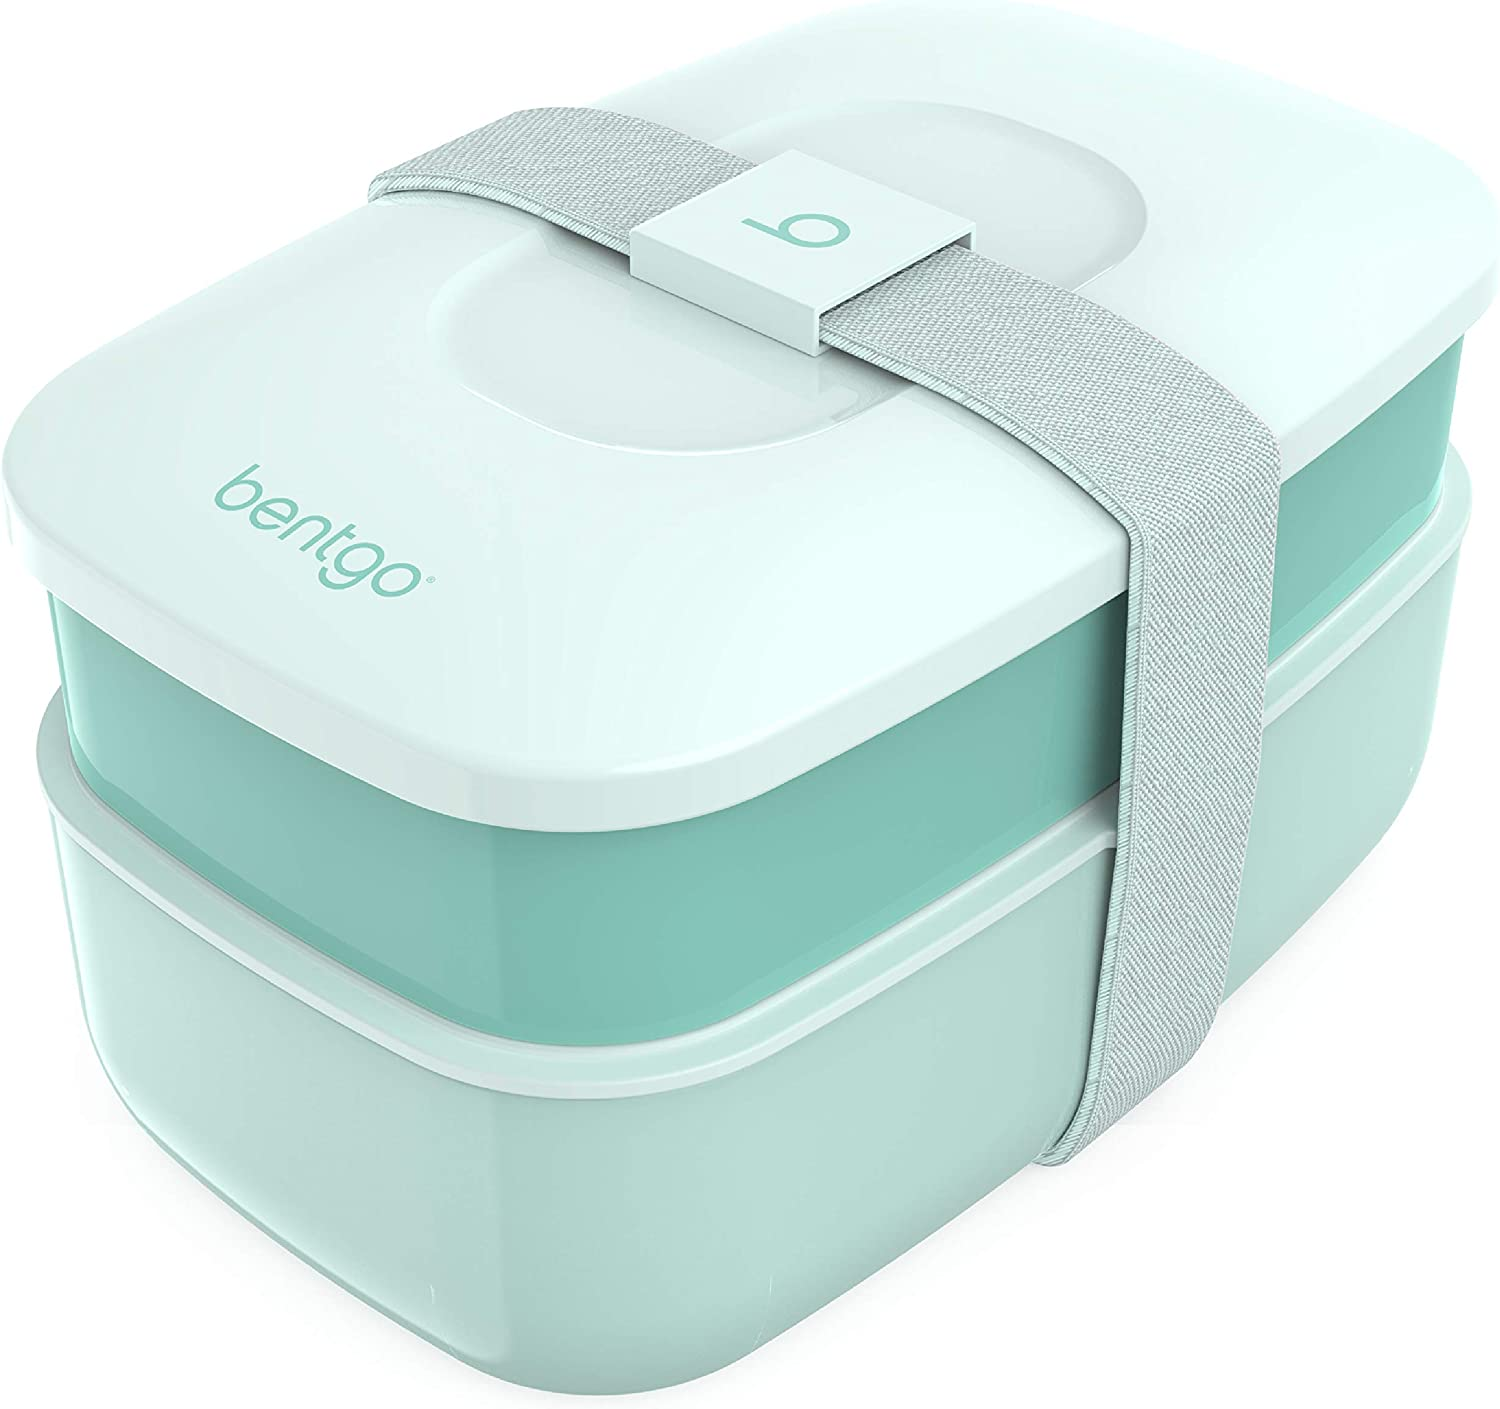 Bentgo Classic - All-in-One Stackable Bento Lunch Box Container - Modern Bento-Style Design Includes 2 Stackable Containers, Built-in Plastic Utensil Set, and Nylon Sealing Strap (Coastal Aqua)